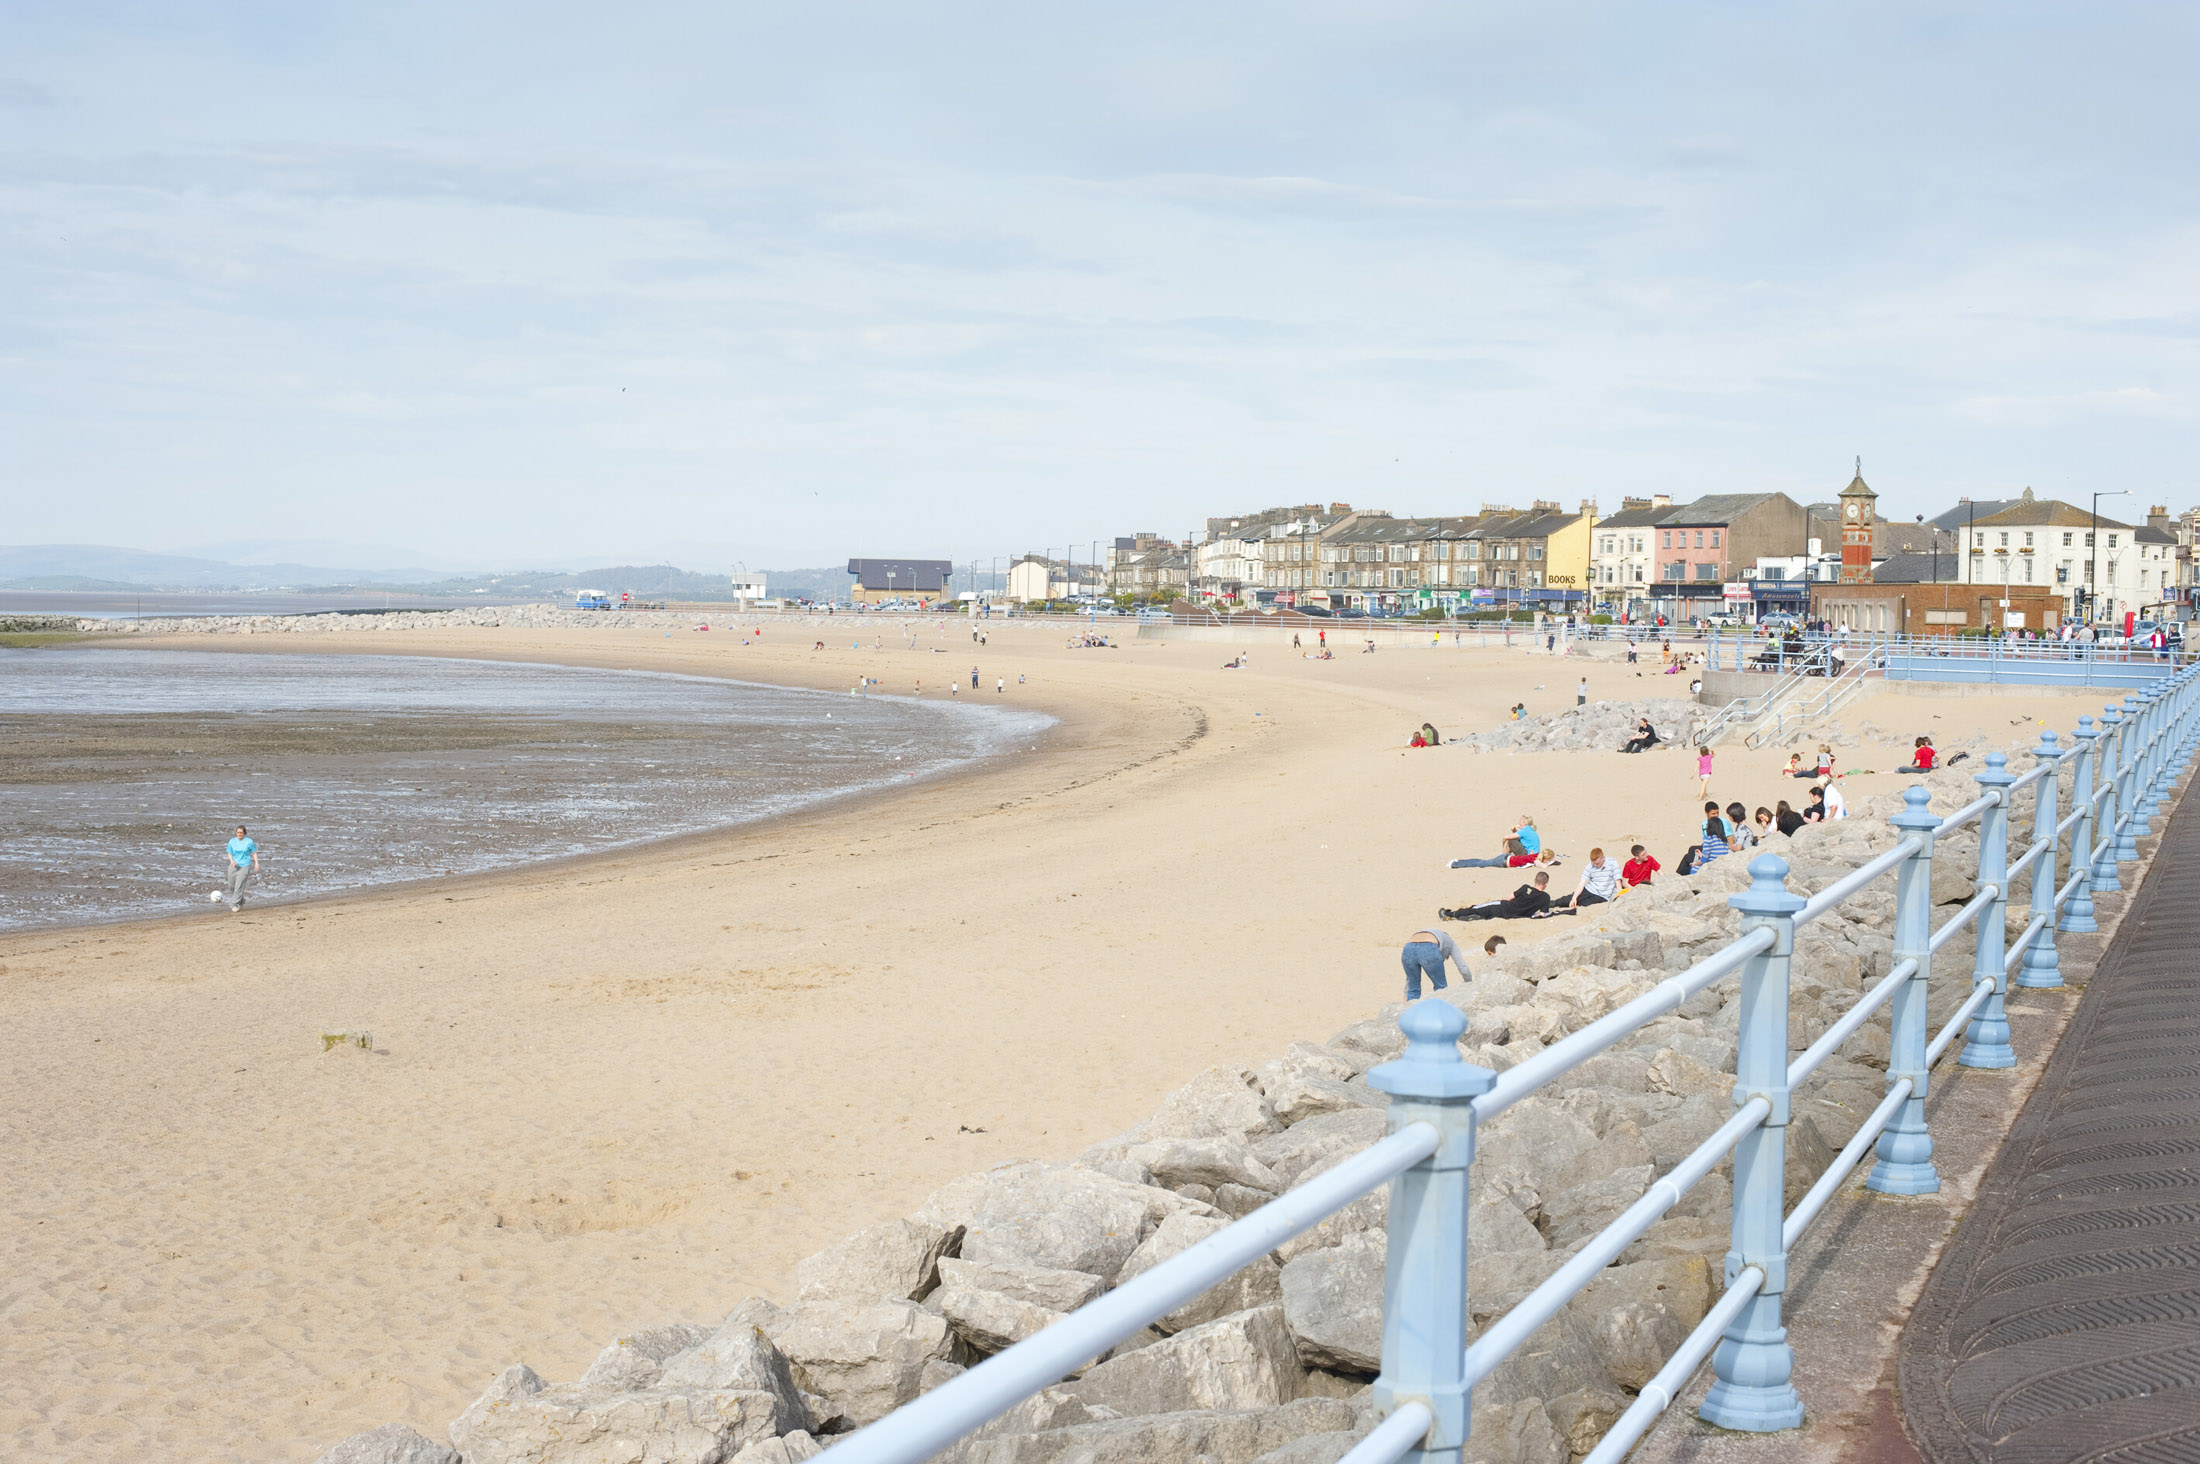 promenade and beach front at morecambe